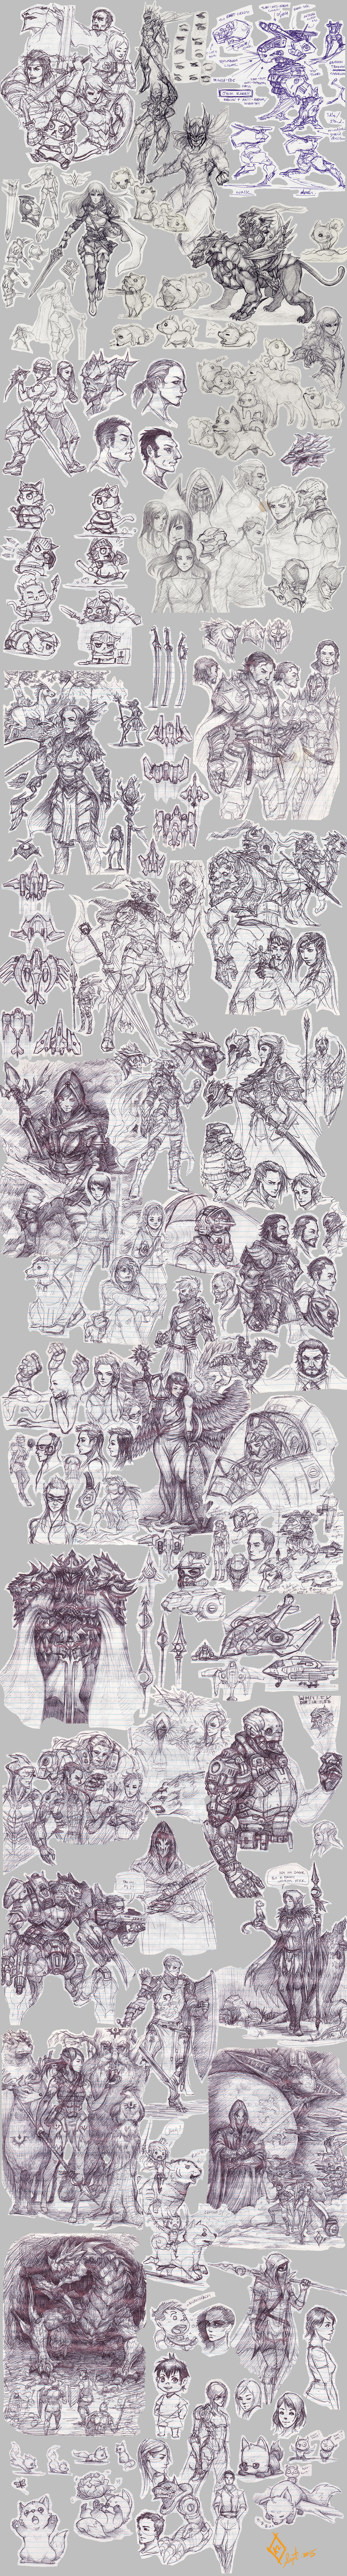 Sketch Collage 01 by shanku